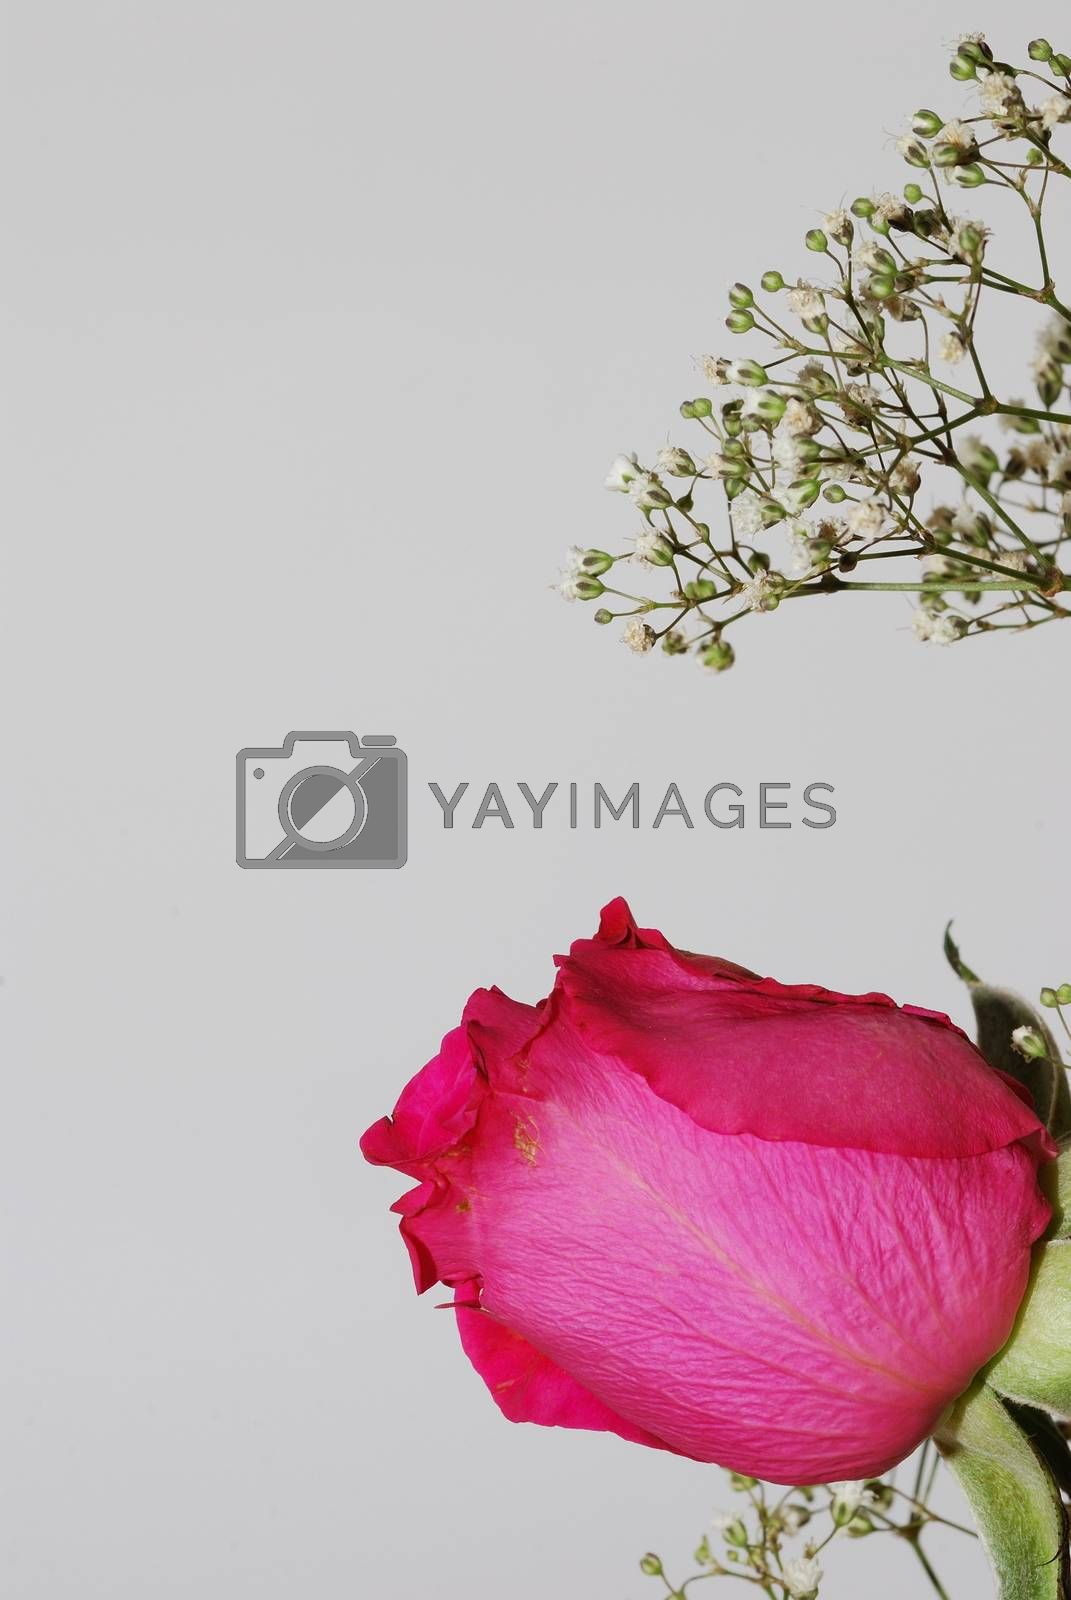 blossom of a pink rose on white background portrait format